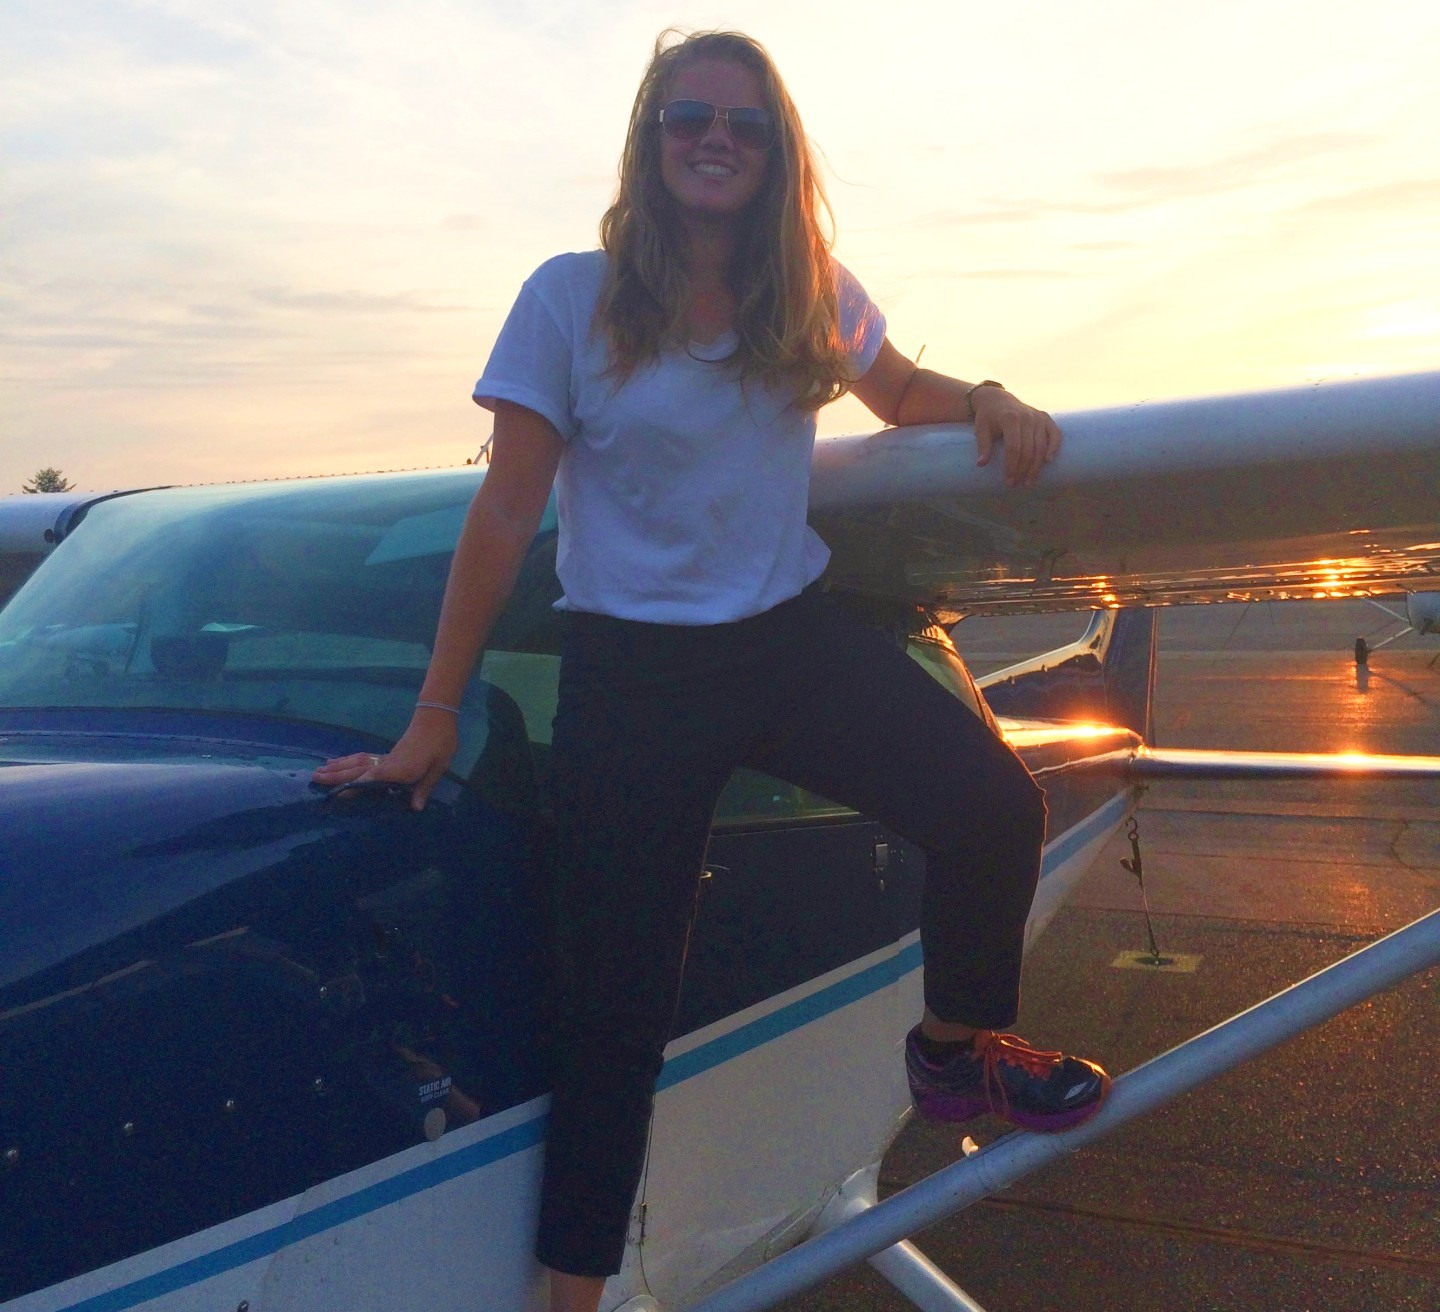 Katie Harris has been ticking boxes on her personal goals. In 2015, she obtained her private pilot's licence. (Submitted)